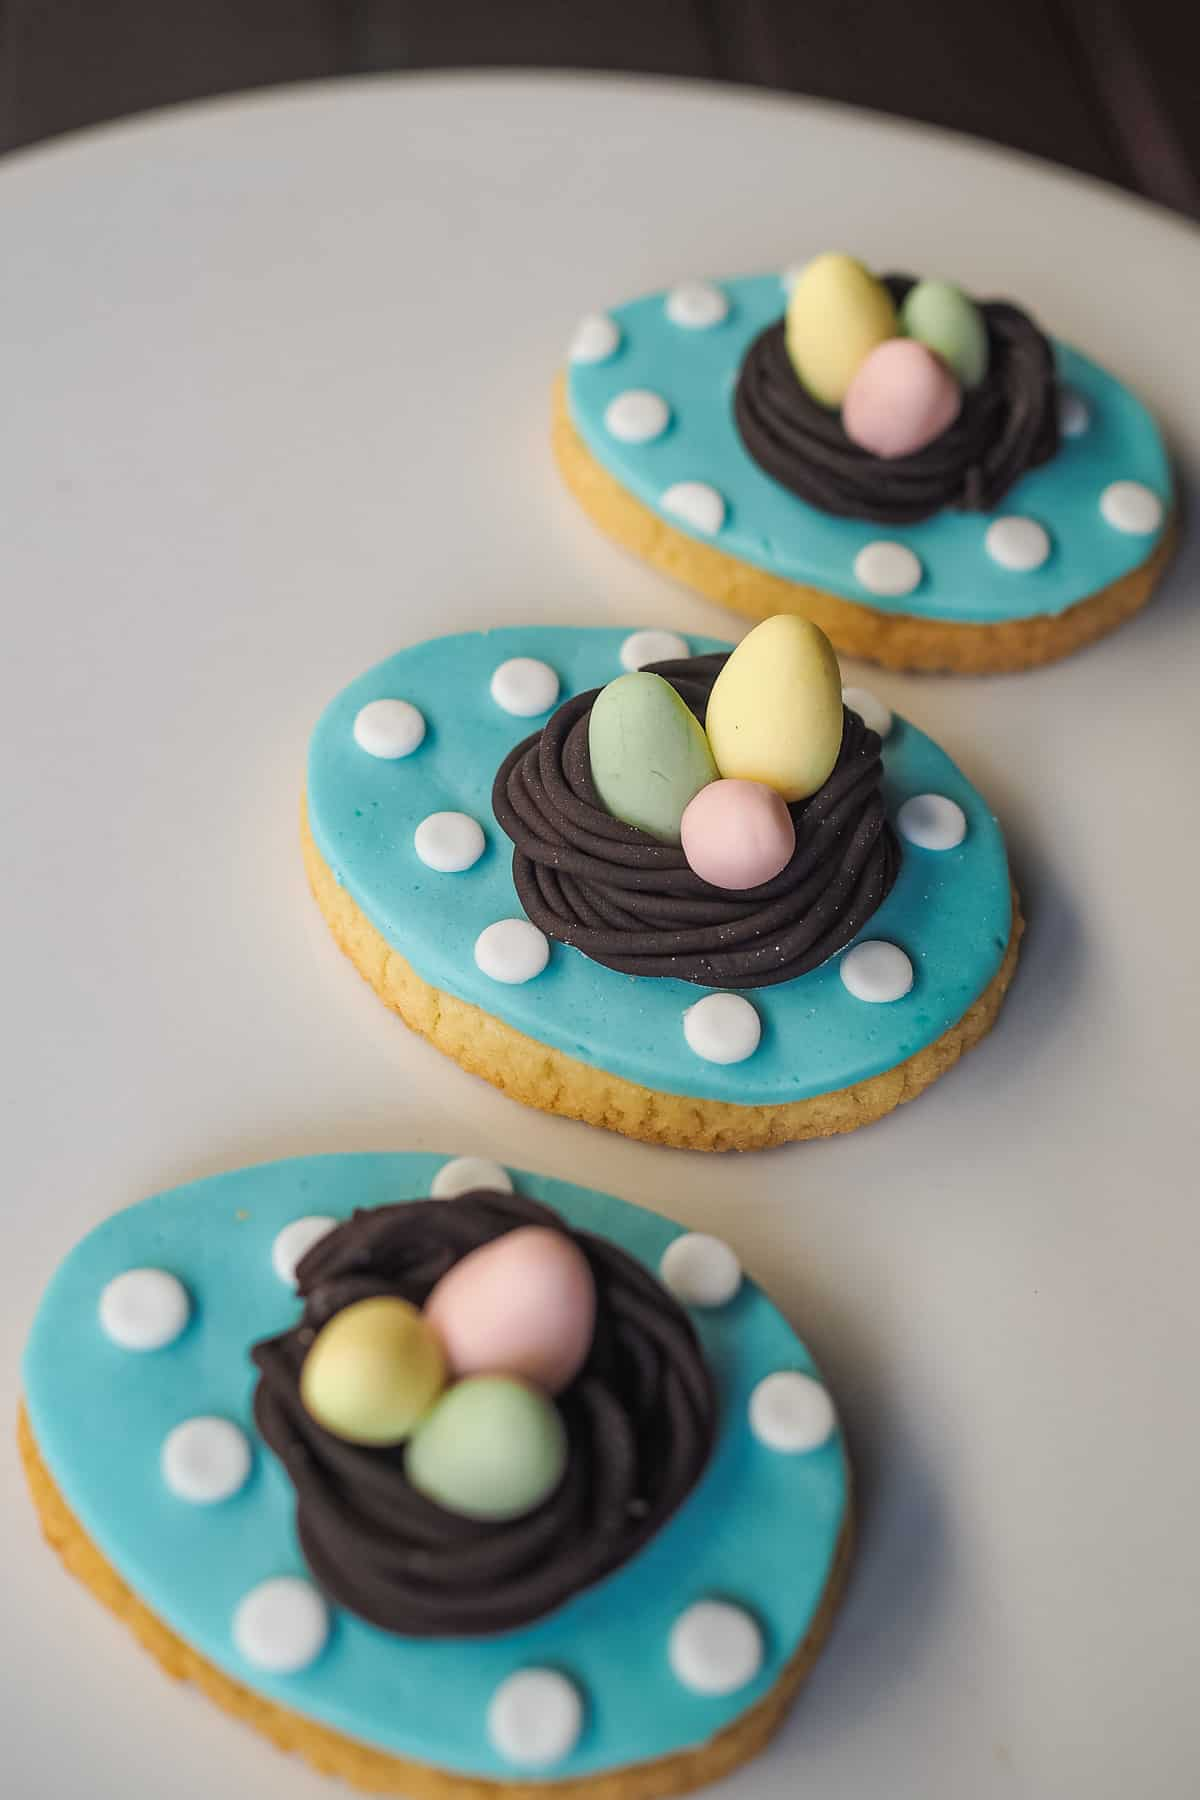 3 egg shaped cookies decorated in fondant. The background is blue with white polka dots. On each cookie is a dark brown fondant bird nest with 3 pastel fondant eggs in green, pink and yellow.